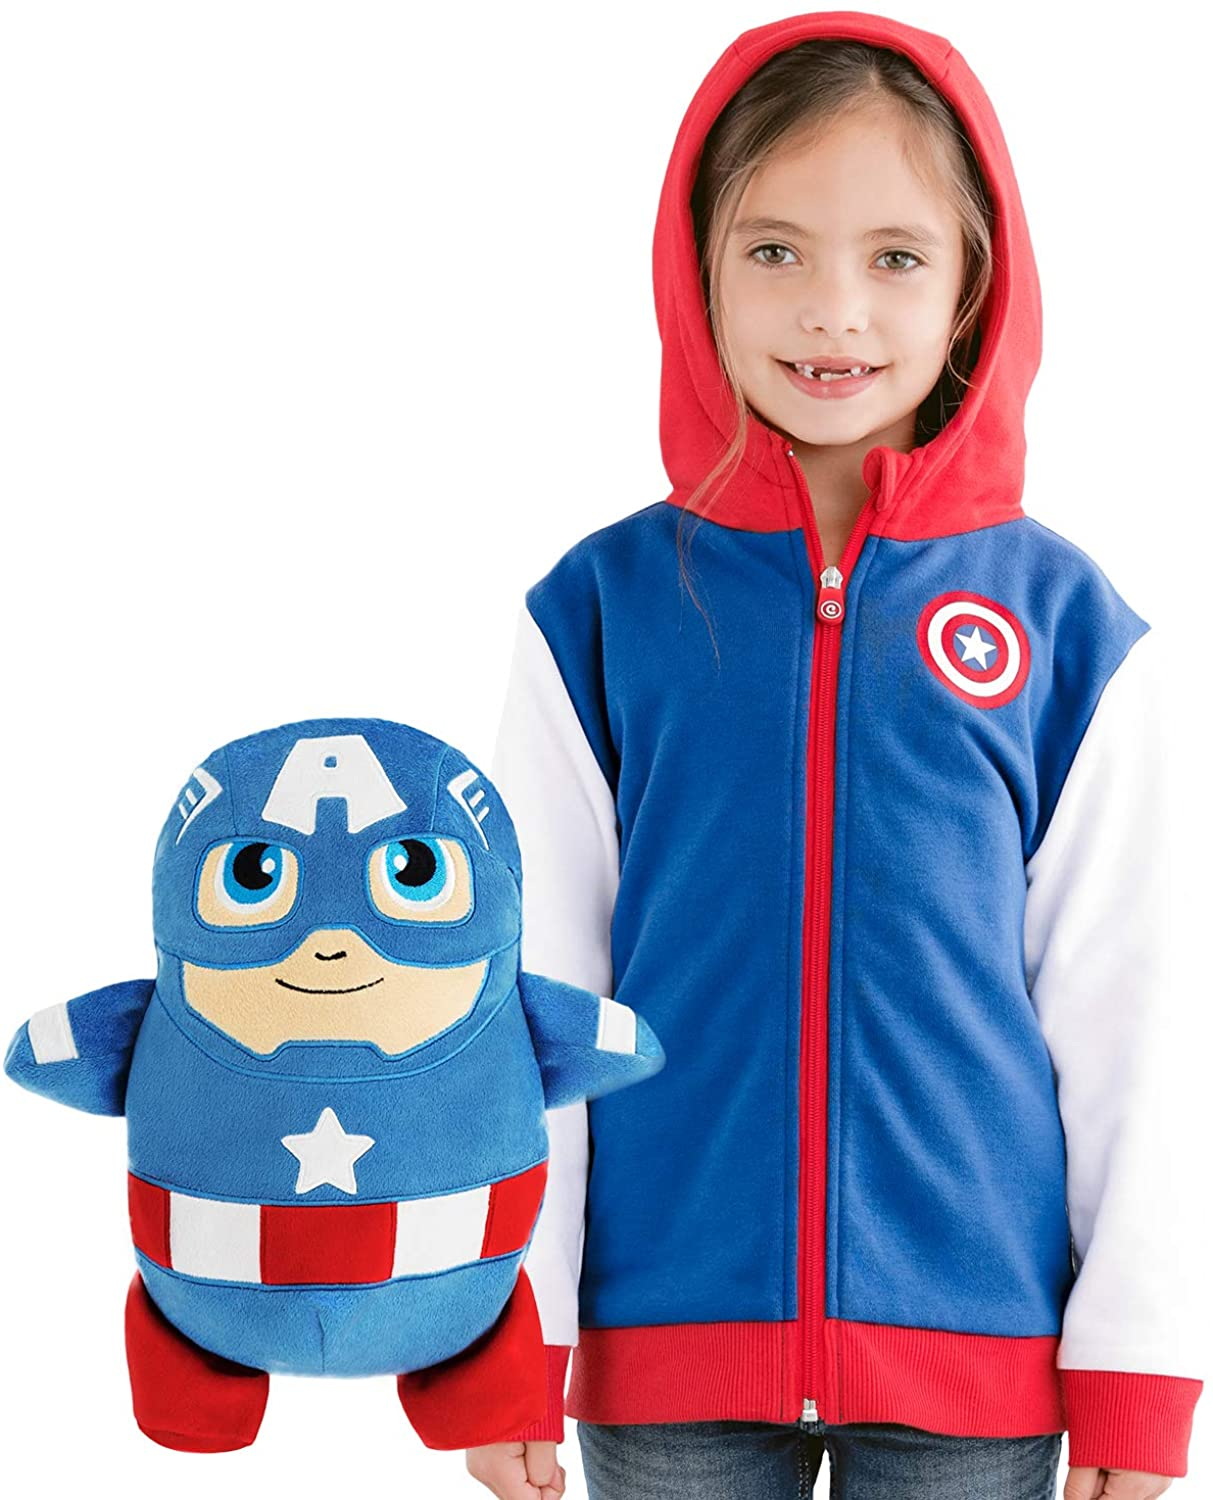 Captain America Hoodie and Soft Plushie For Kids